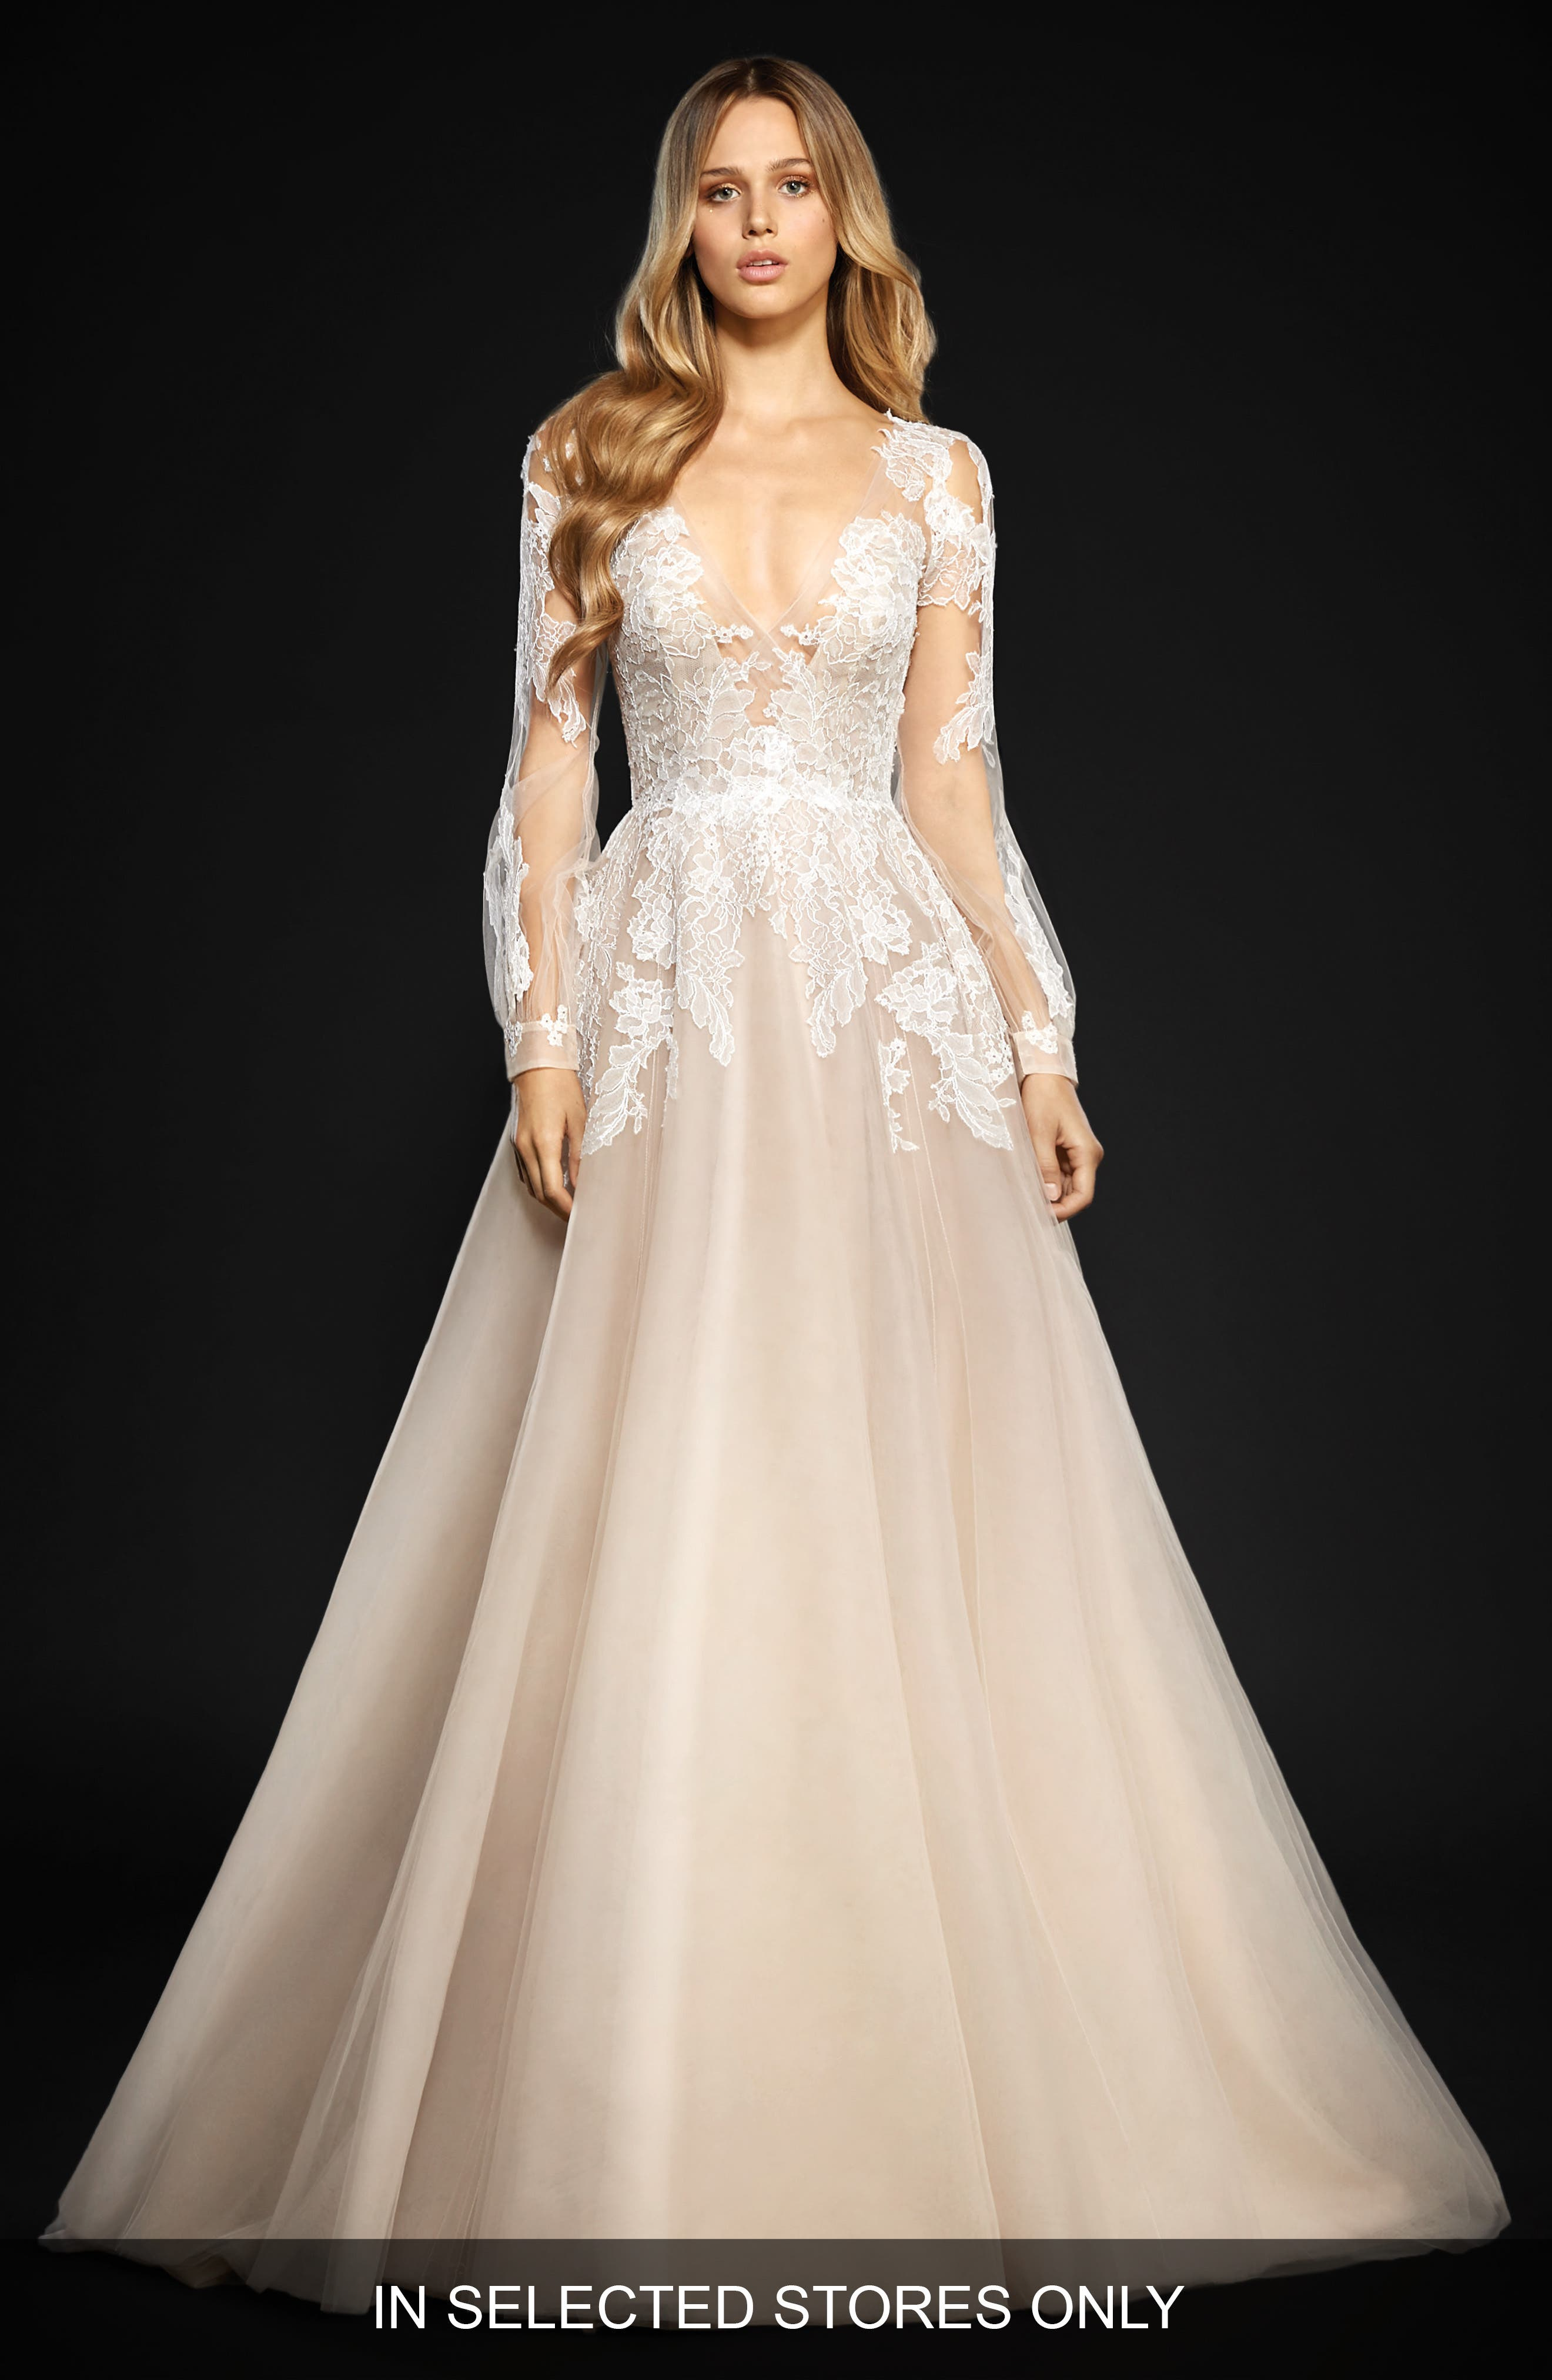 Long Sleeve Lace Wedding Dress with Bow